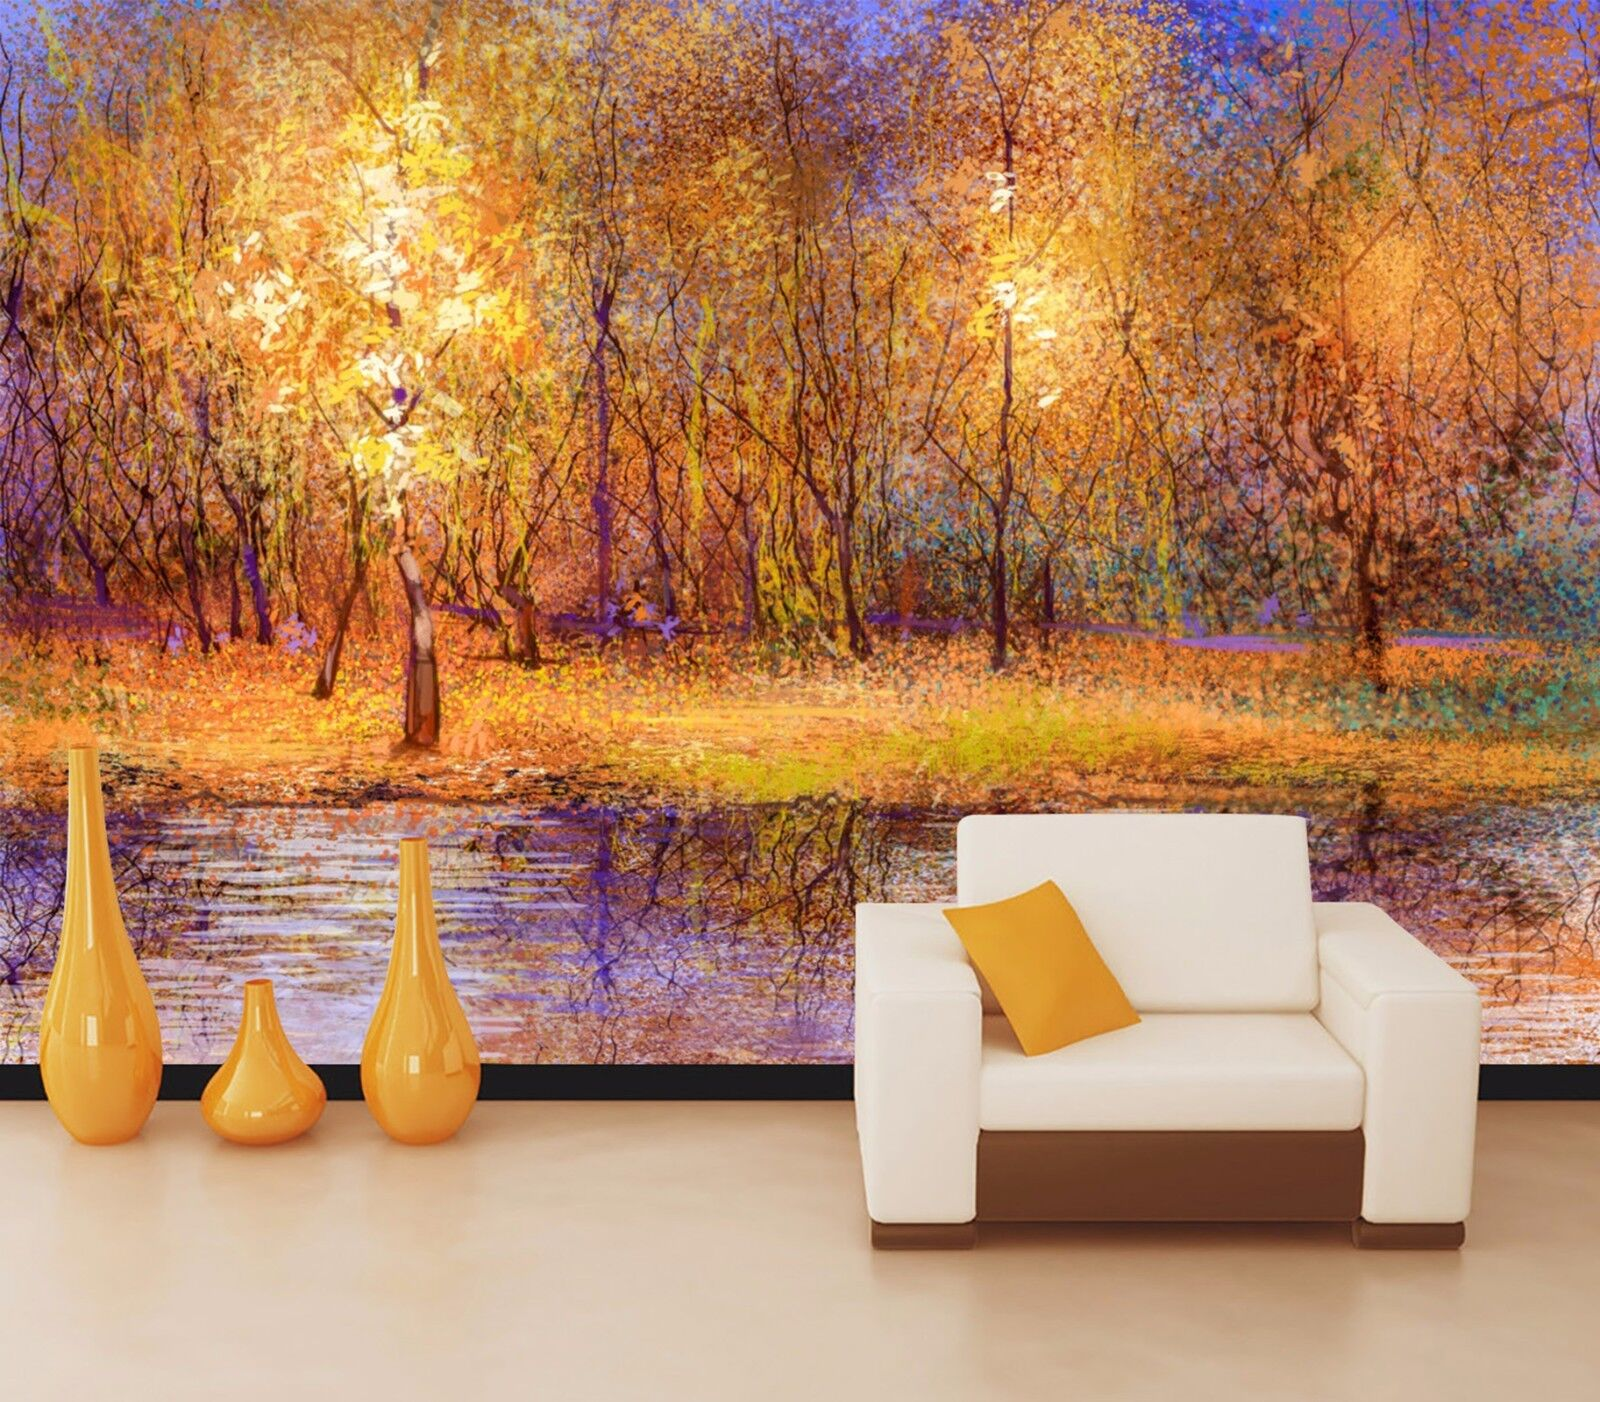 3D Golden woods 4322 Wall Paper Wall Print Decal Wall Deco Indoor Wall Murals